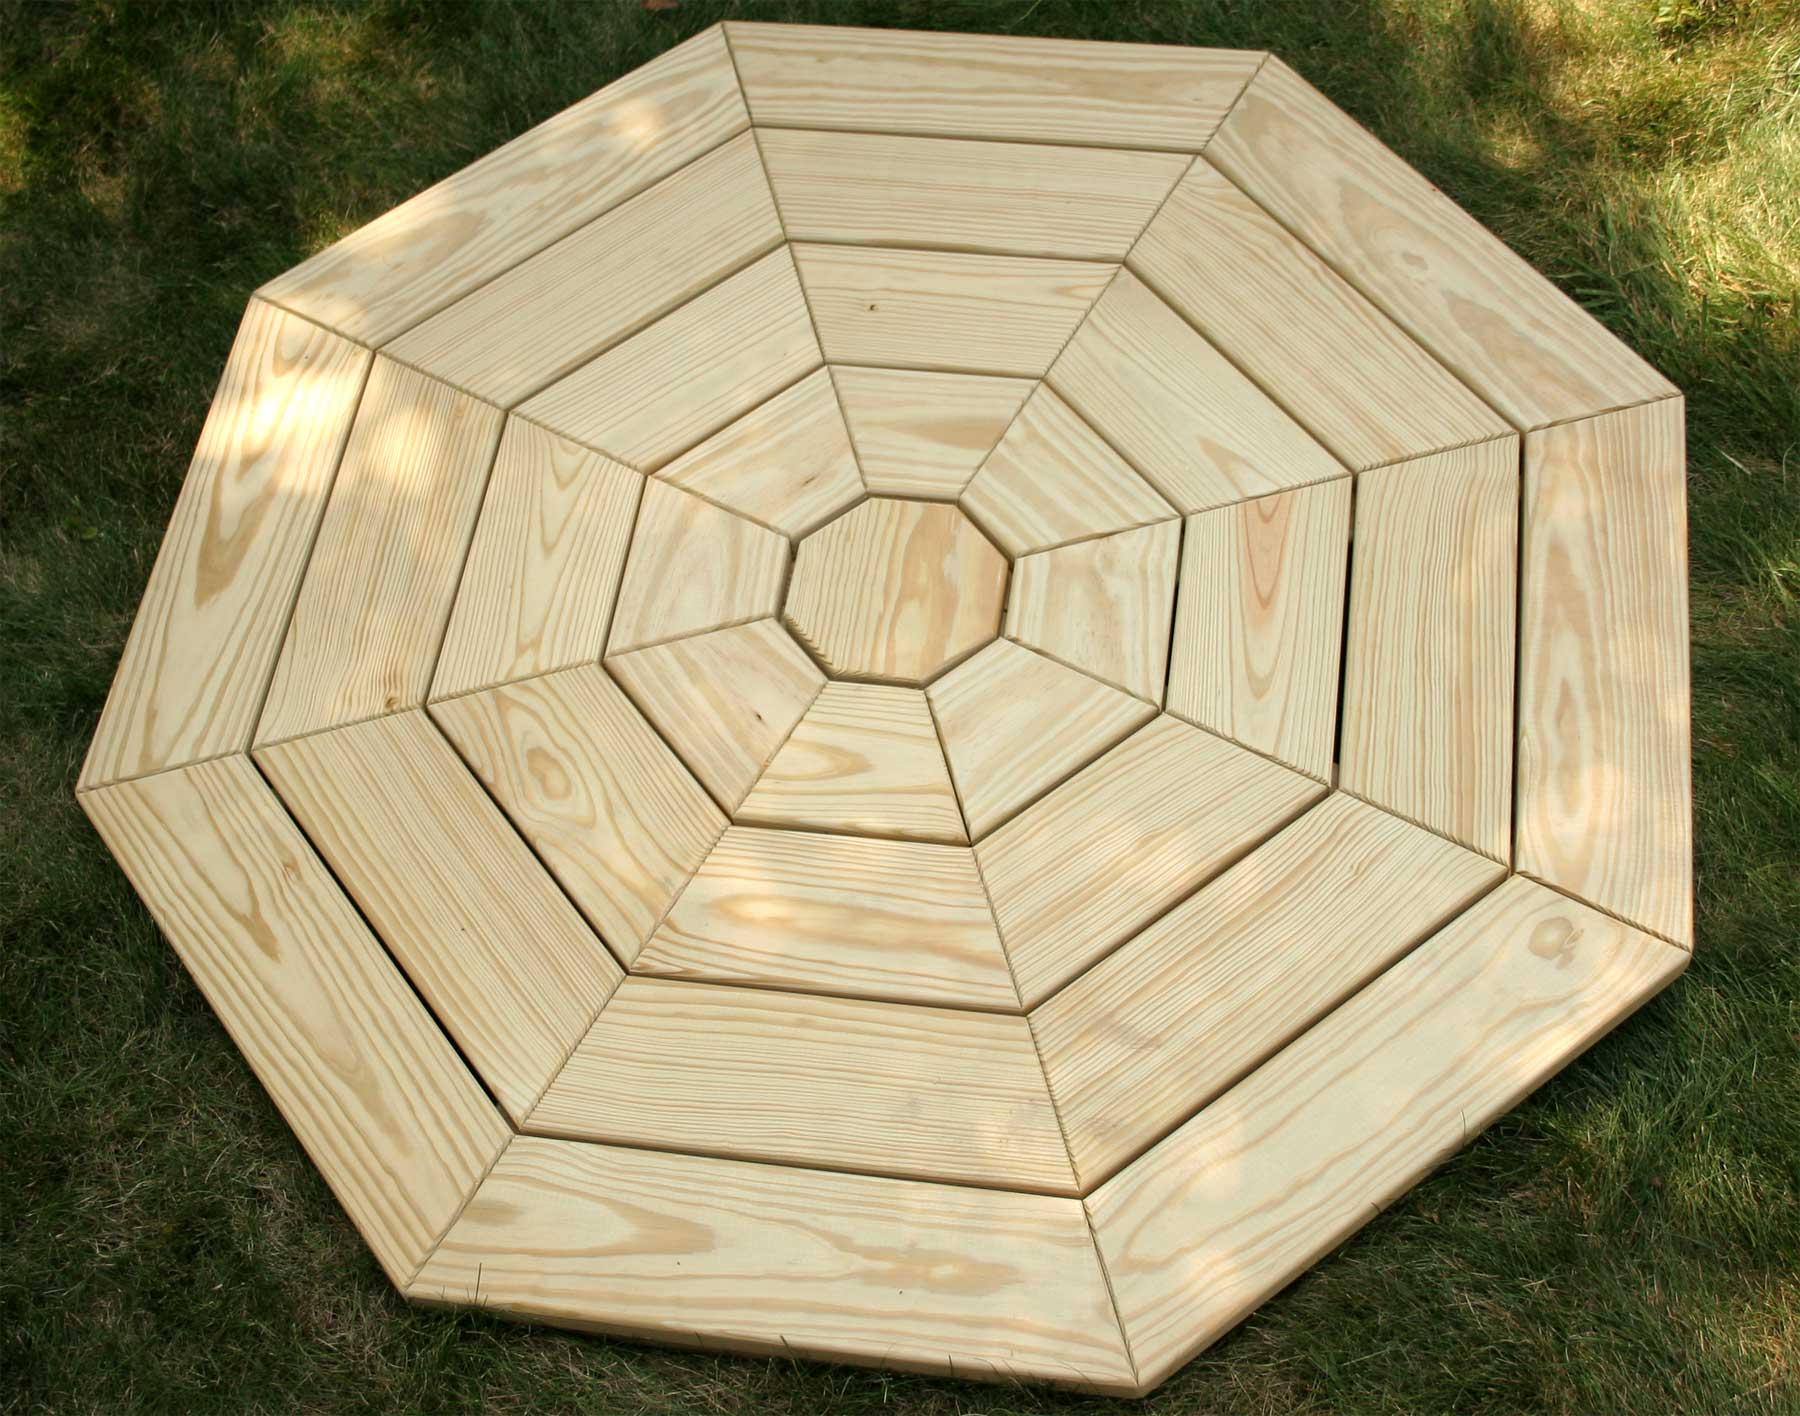 Choice Hexagon picnic table plans with umbrella hole ~ dadi wood